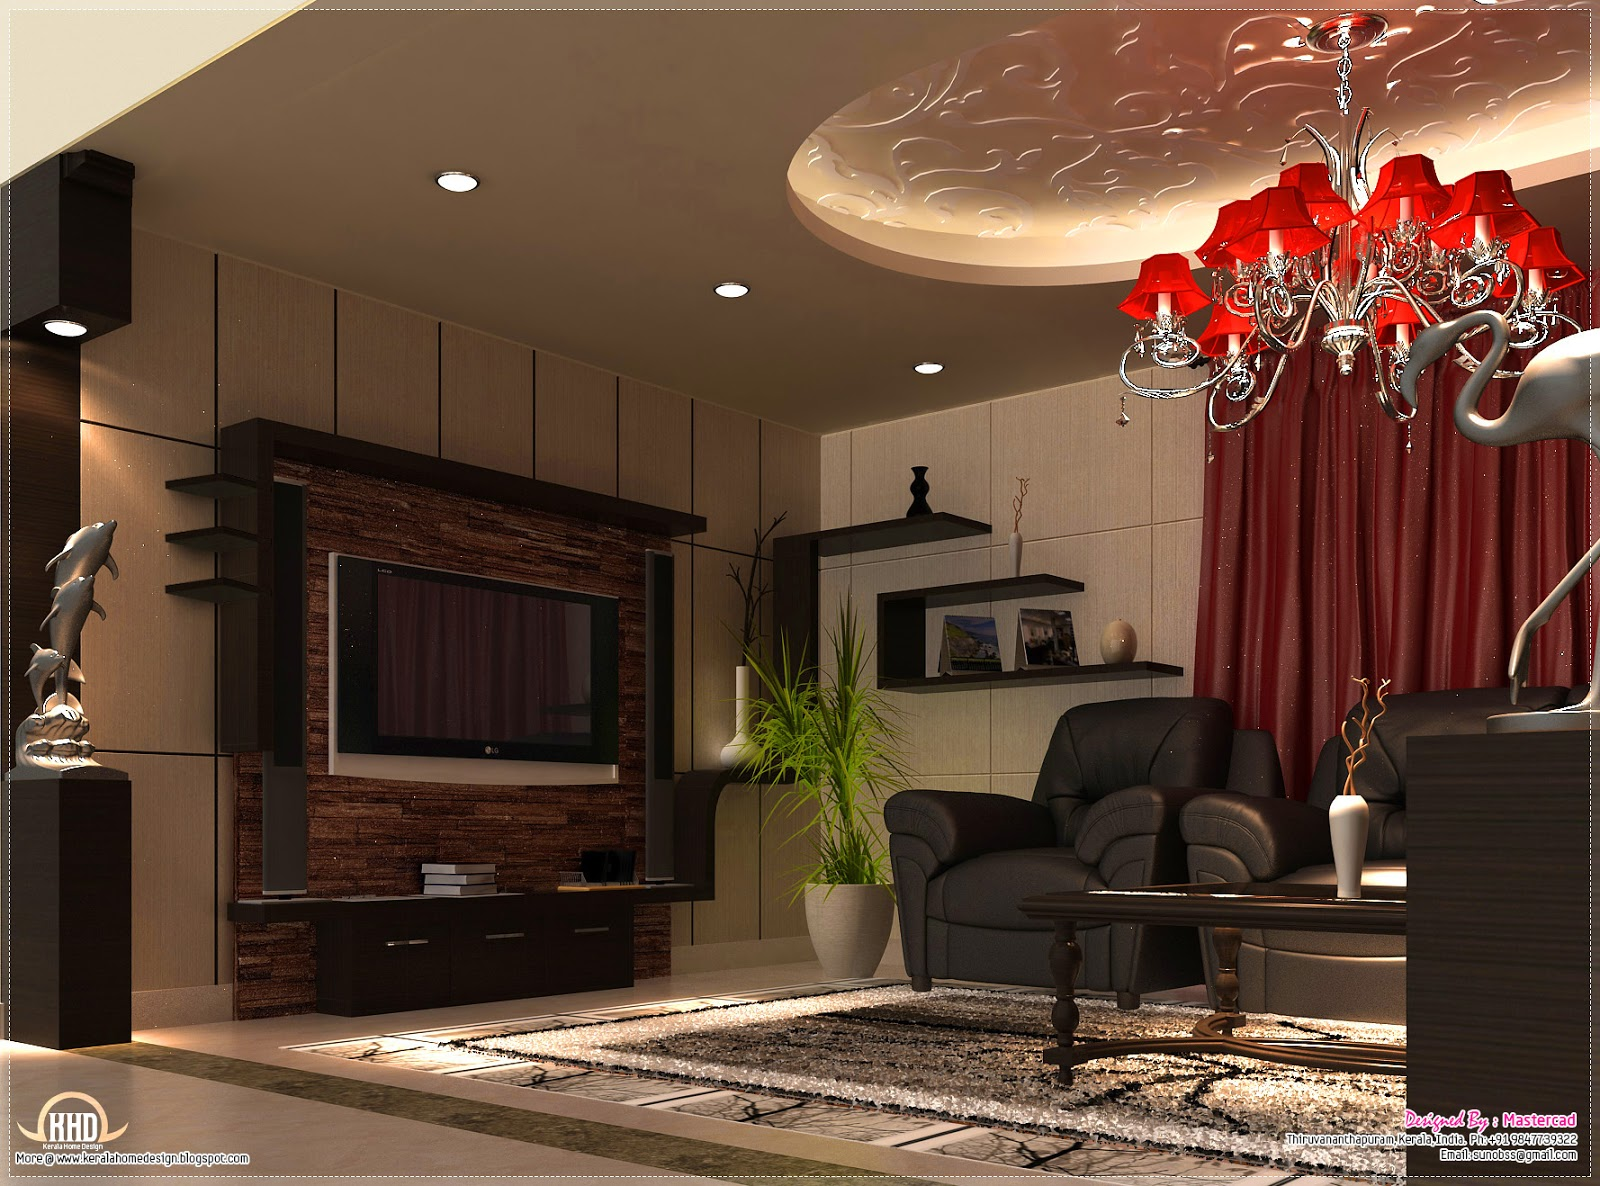 Interior design ideas kerala home design and floor plans for Small apartment interior design india